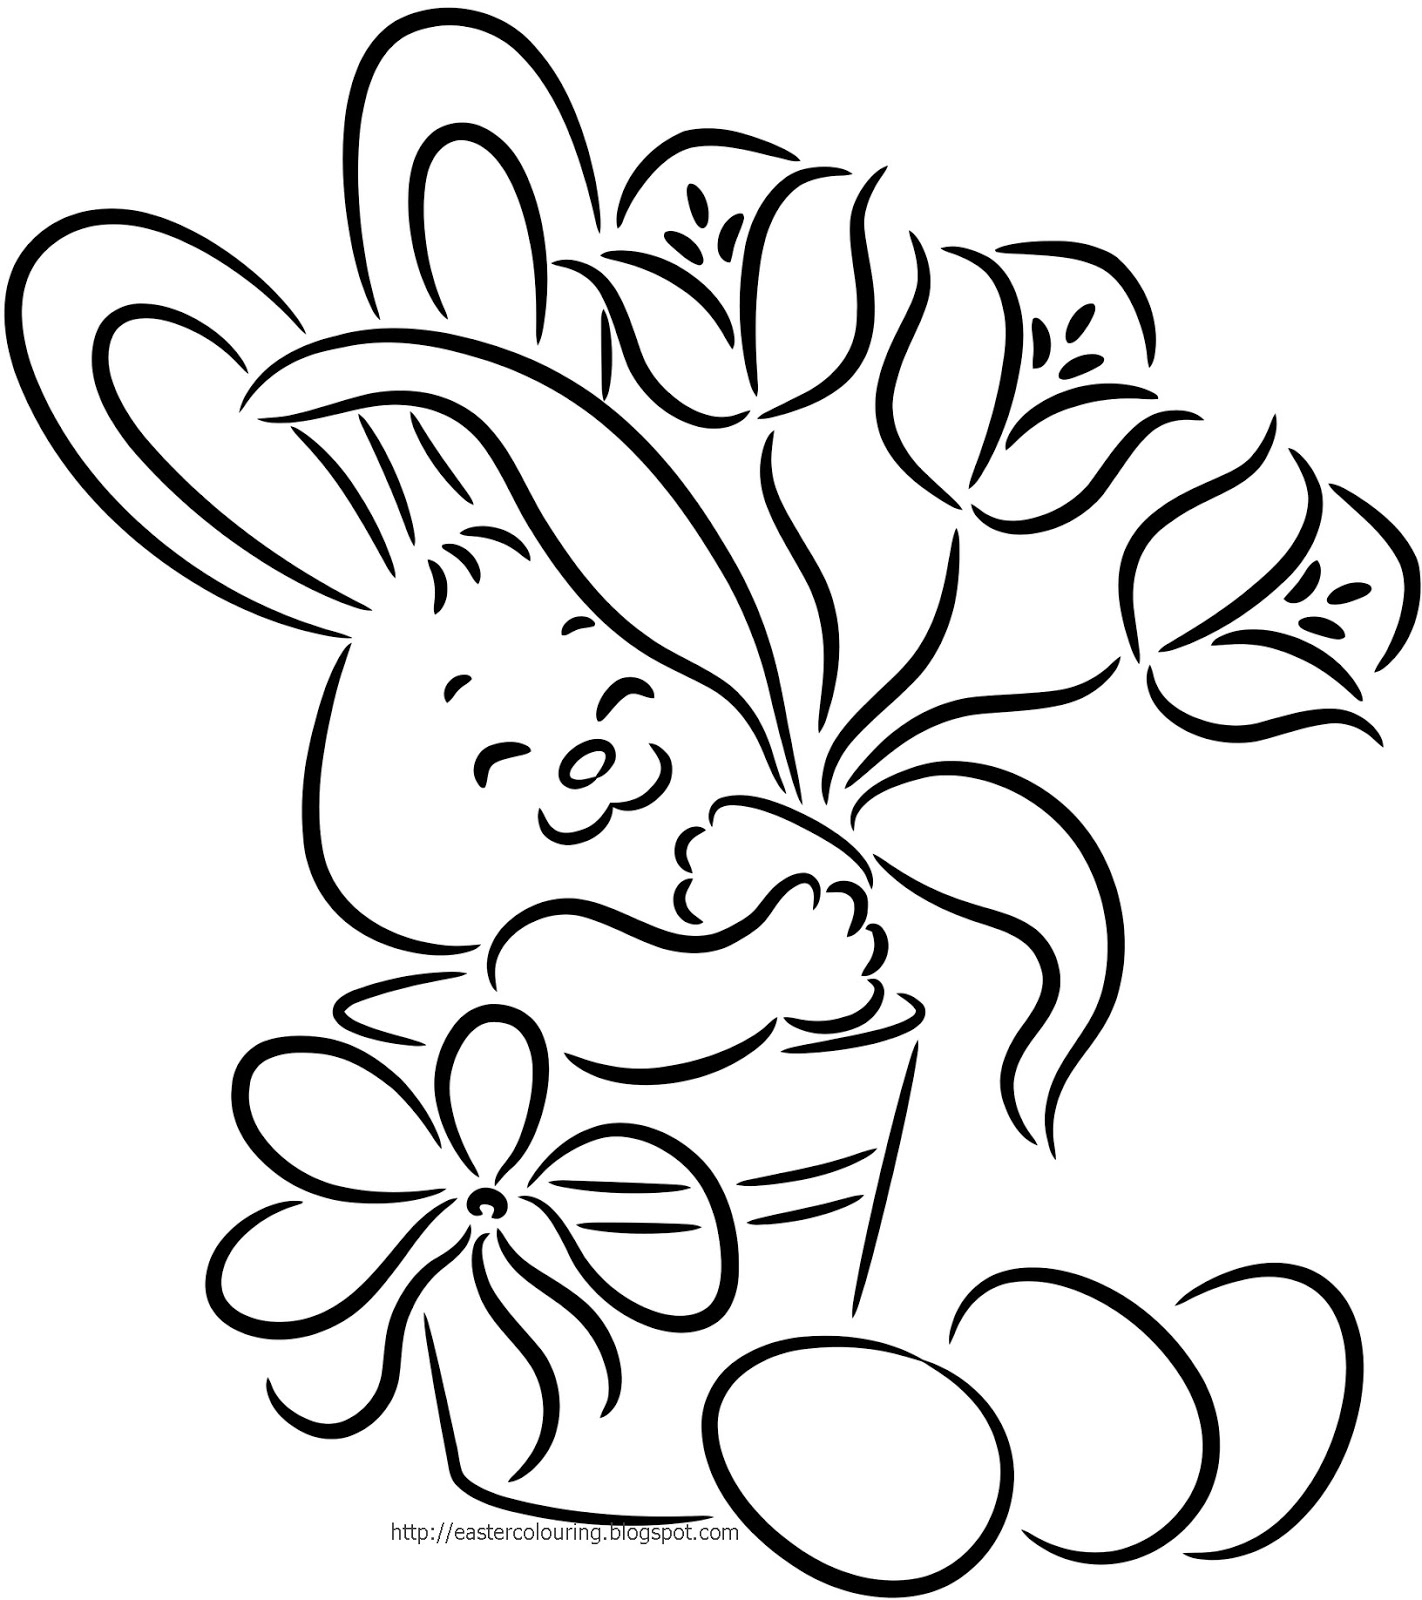 easter printable coloring pages best free printable easter bunny coloring pages russell pages easter coloring printable